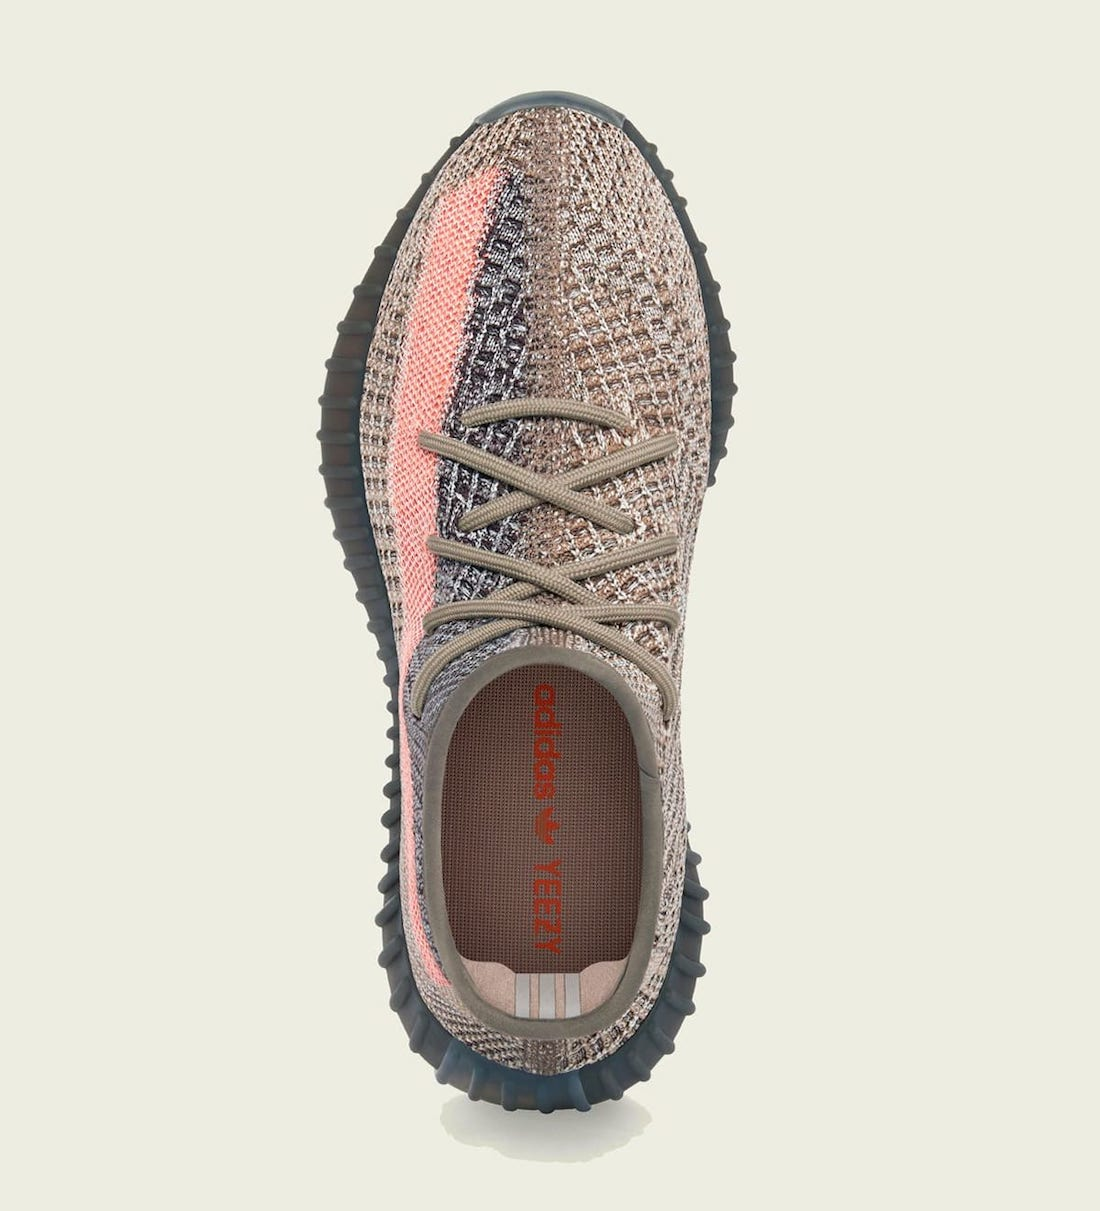 adidas Yeezy Boost 350 V2 Ash Stone GW0089 Release Price